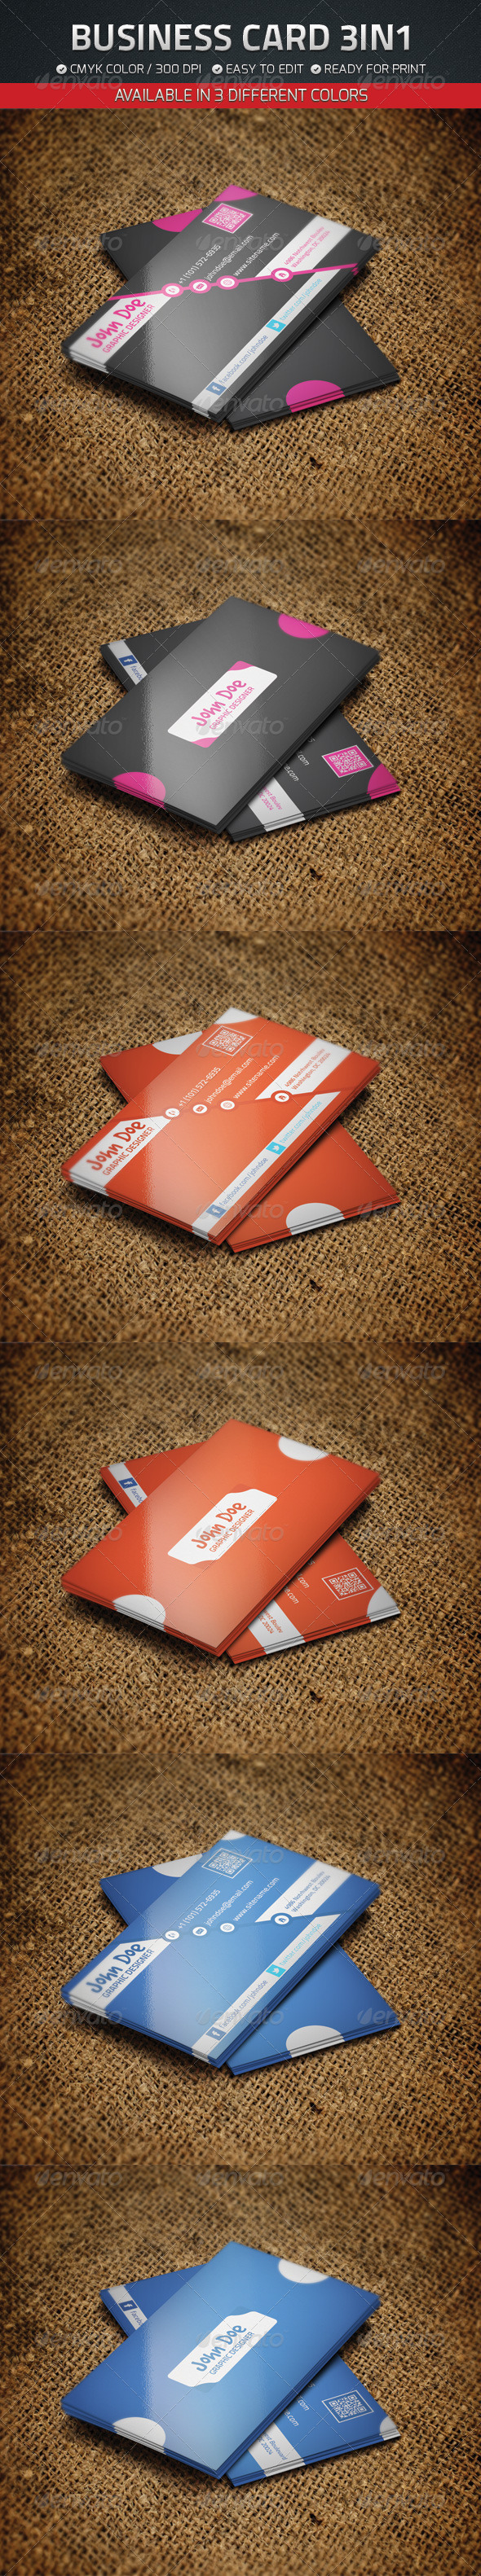 GraphicRiver Business Card 3 in 1 4646715